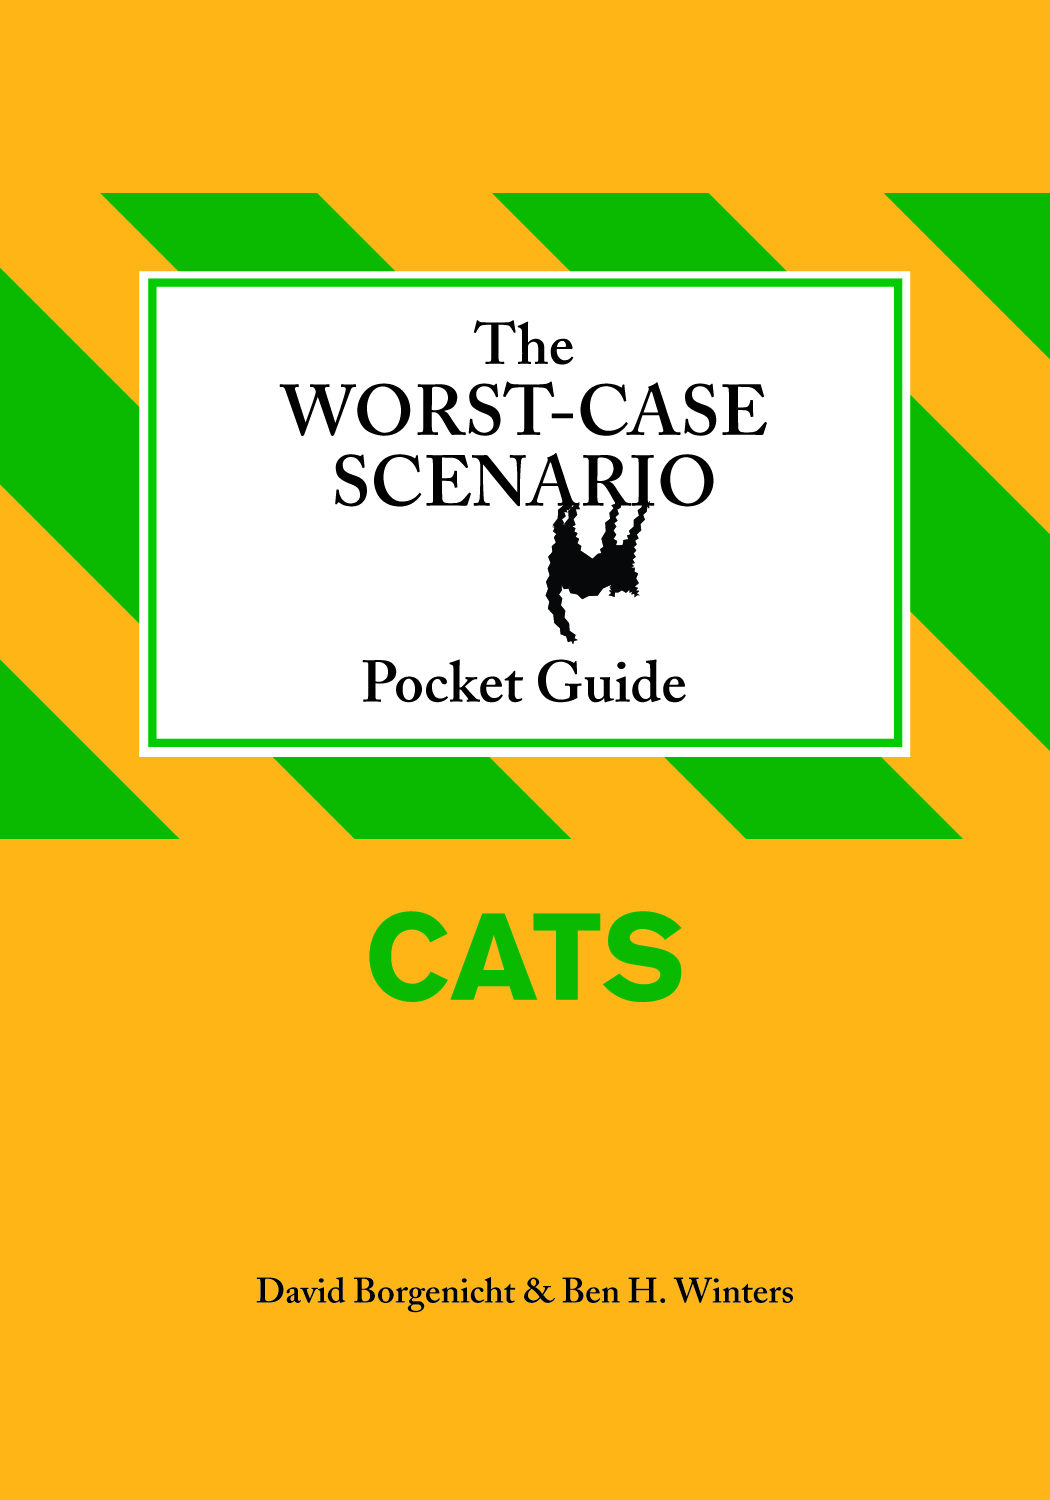 wcspg_cats_cover.jpg